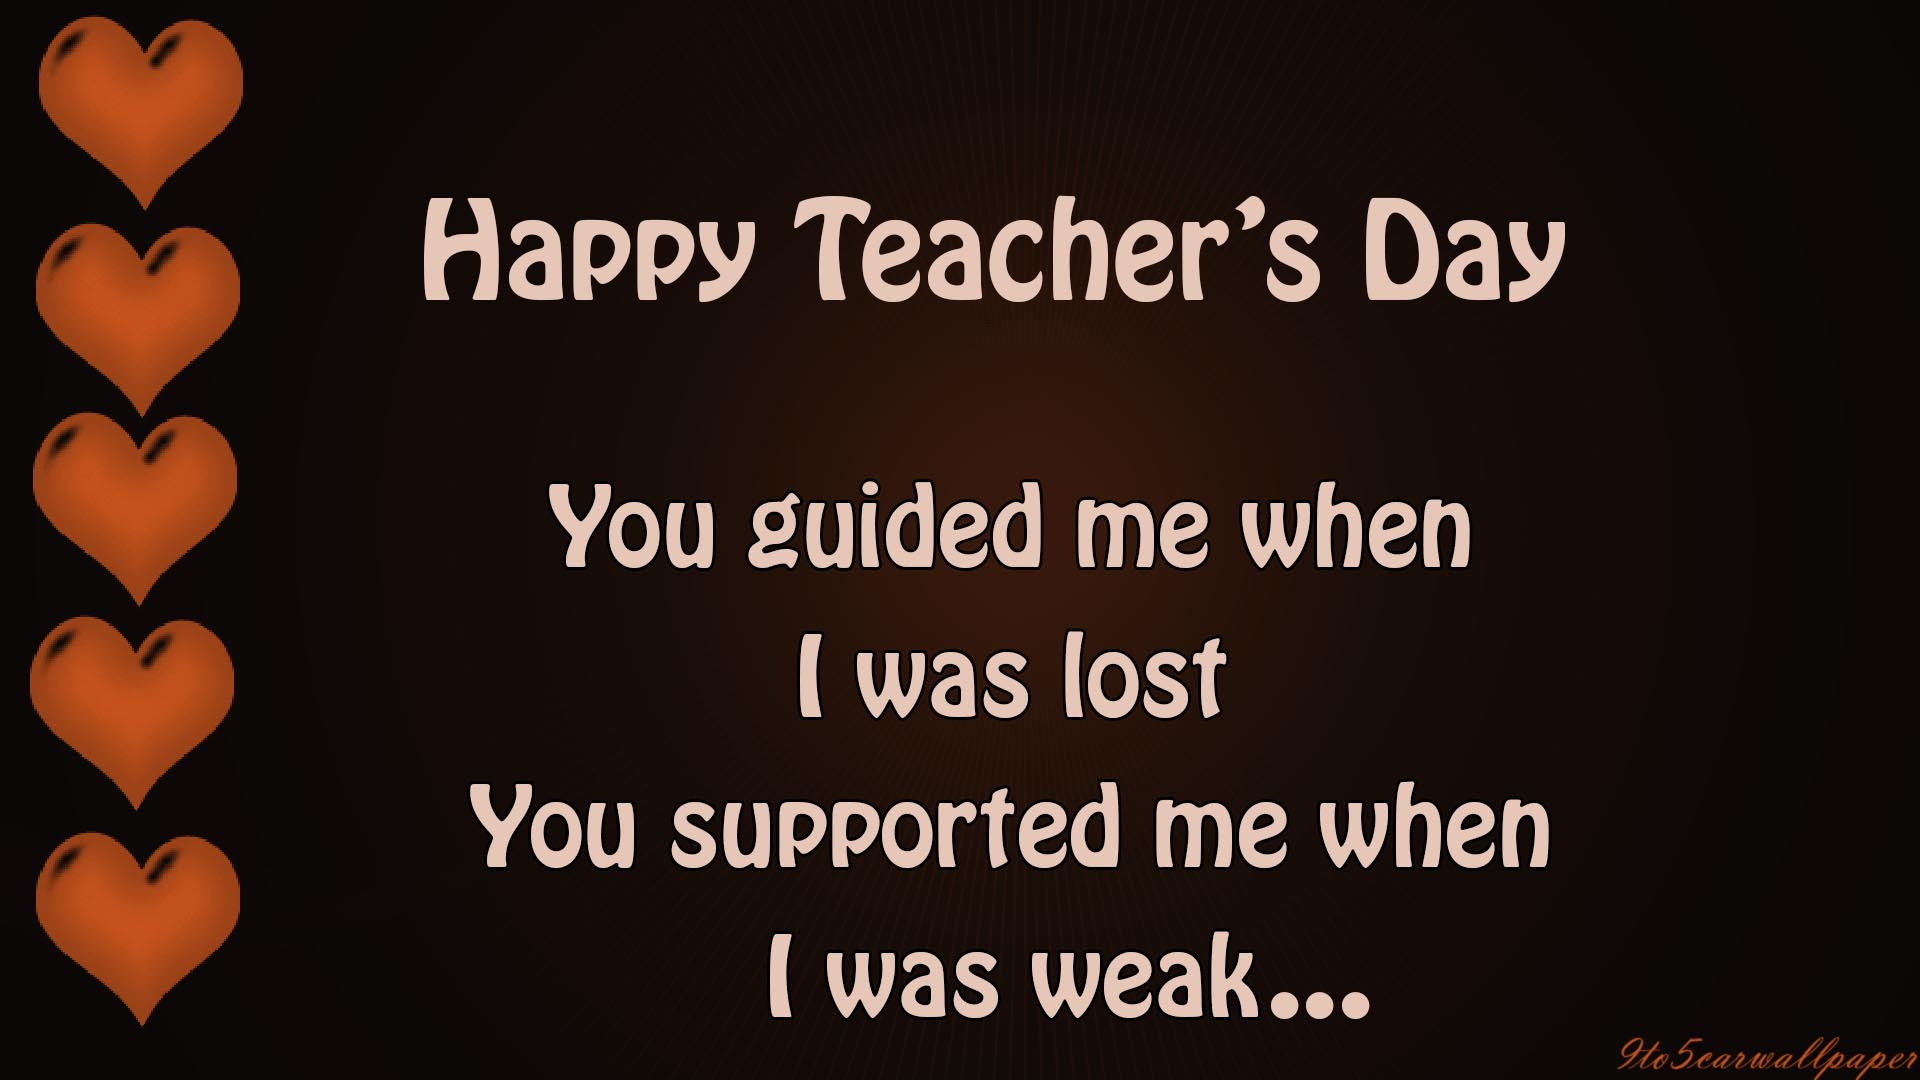 Teachers Day Images With Quotes Latest Events Latest World Events